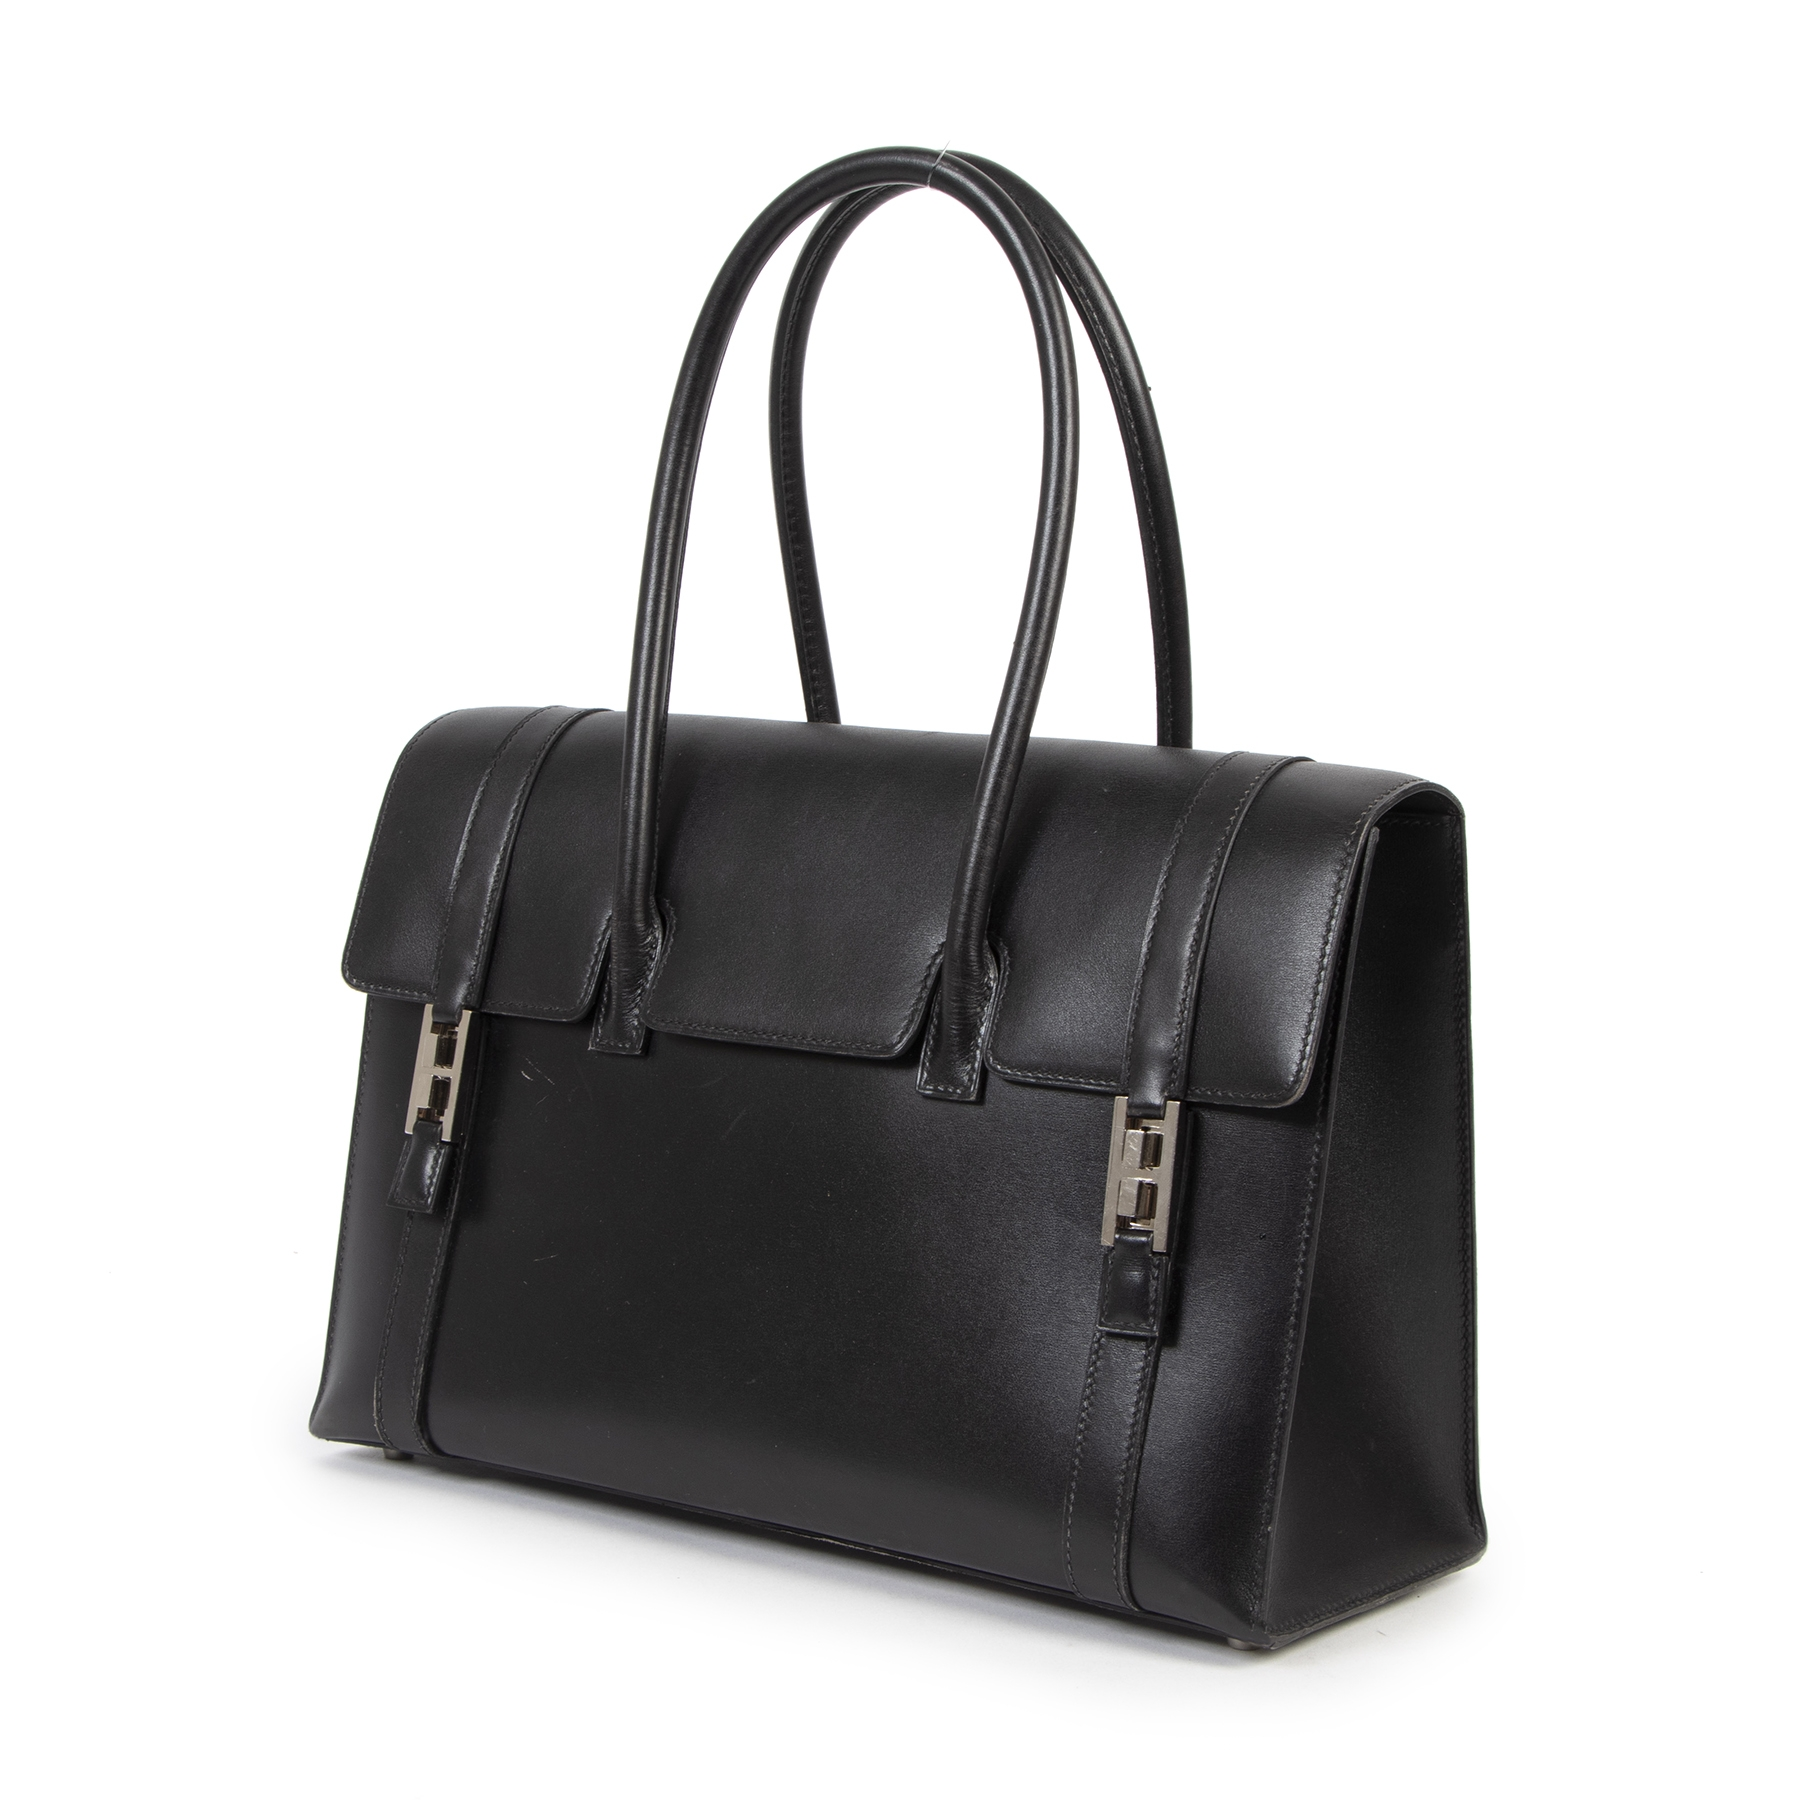 Authentieke tweedehands vintage Hermès Drag 32 Black Boxcalf Leather koop online webshop LabelLOV